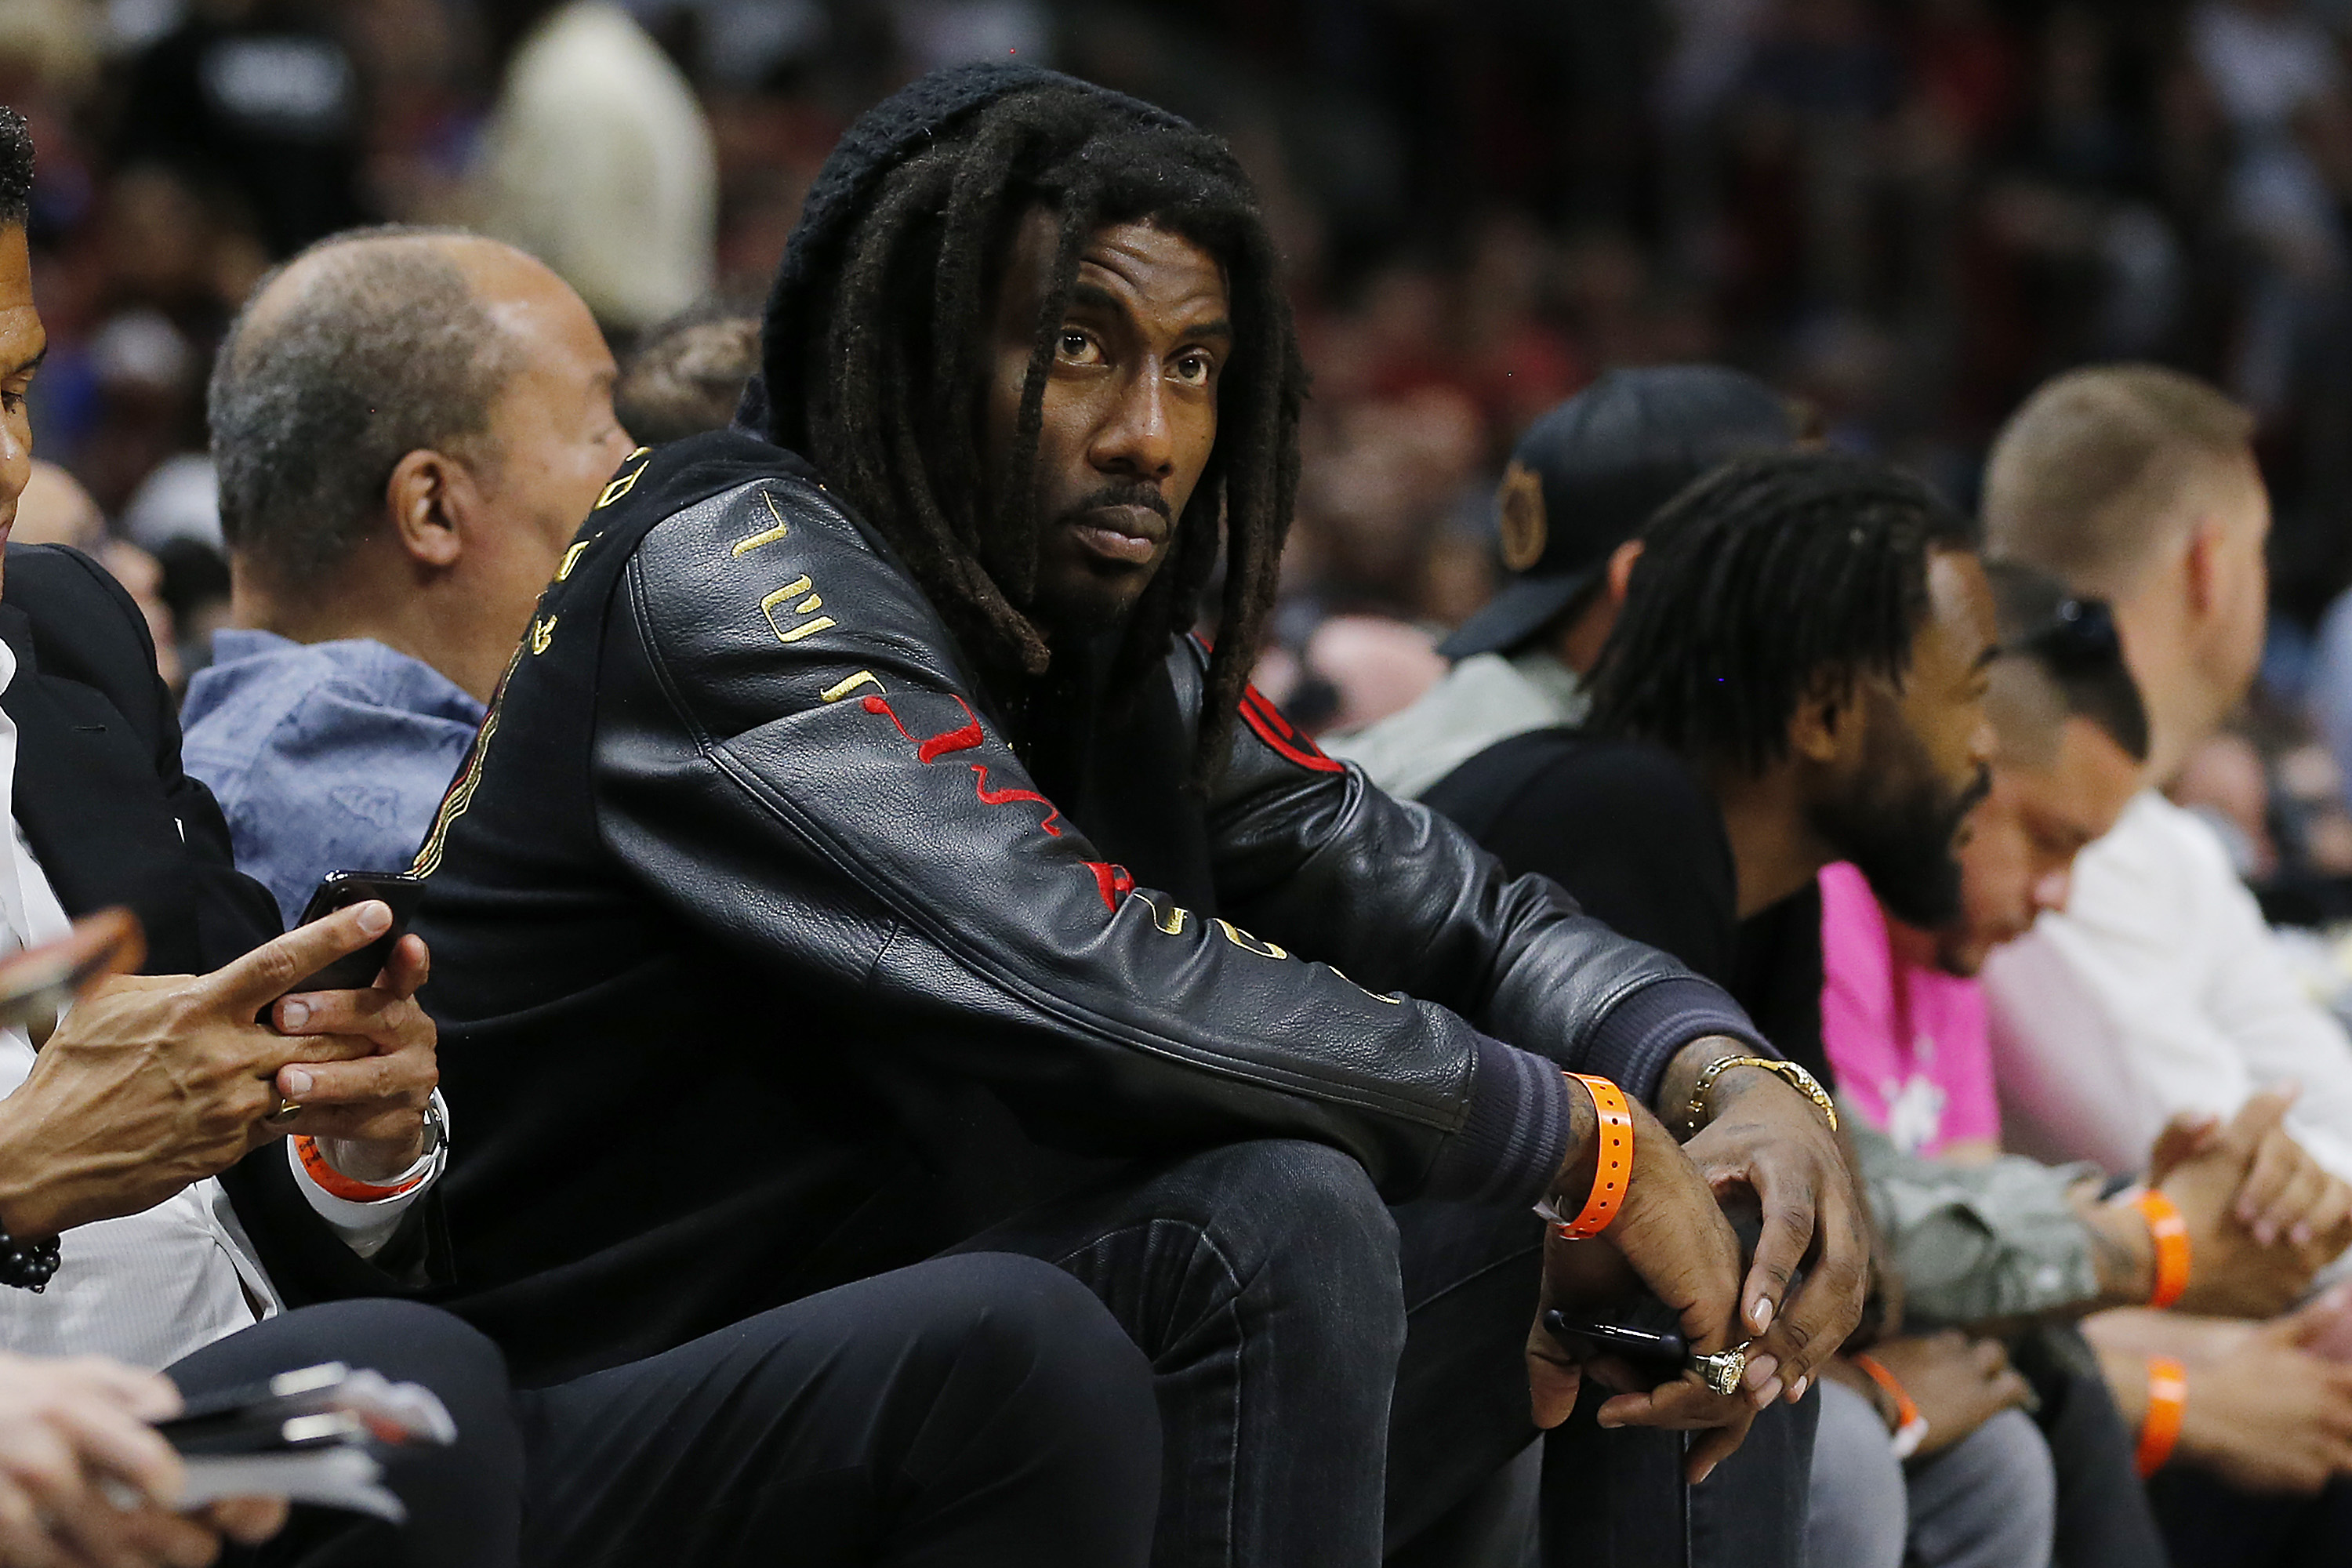 Former NBA player Amar'e Stoudemire looks on during a game